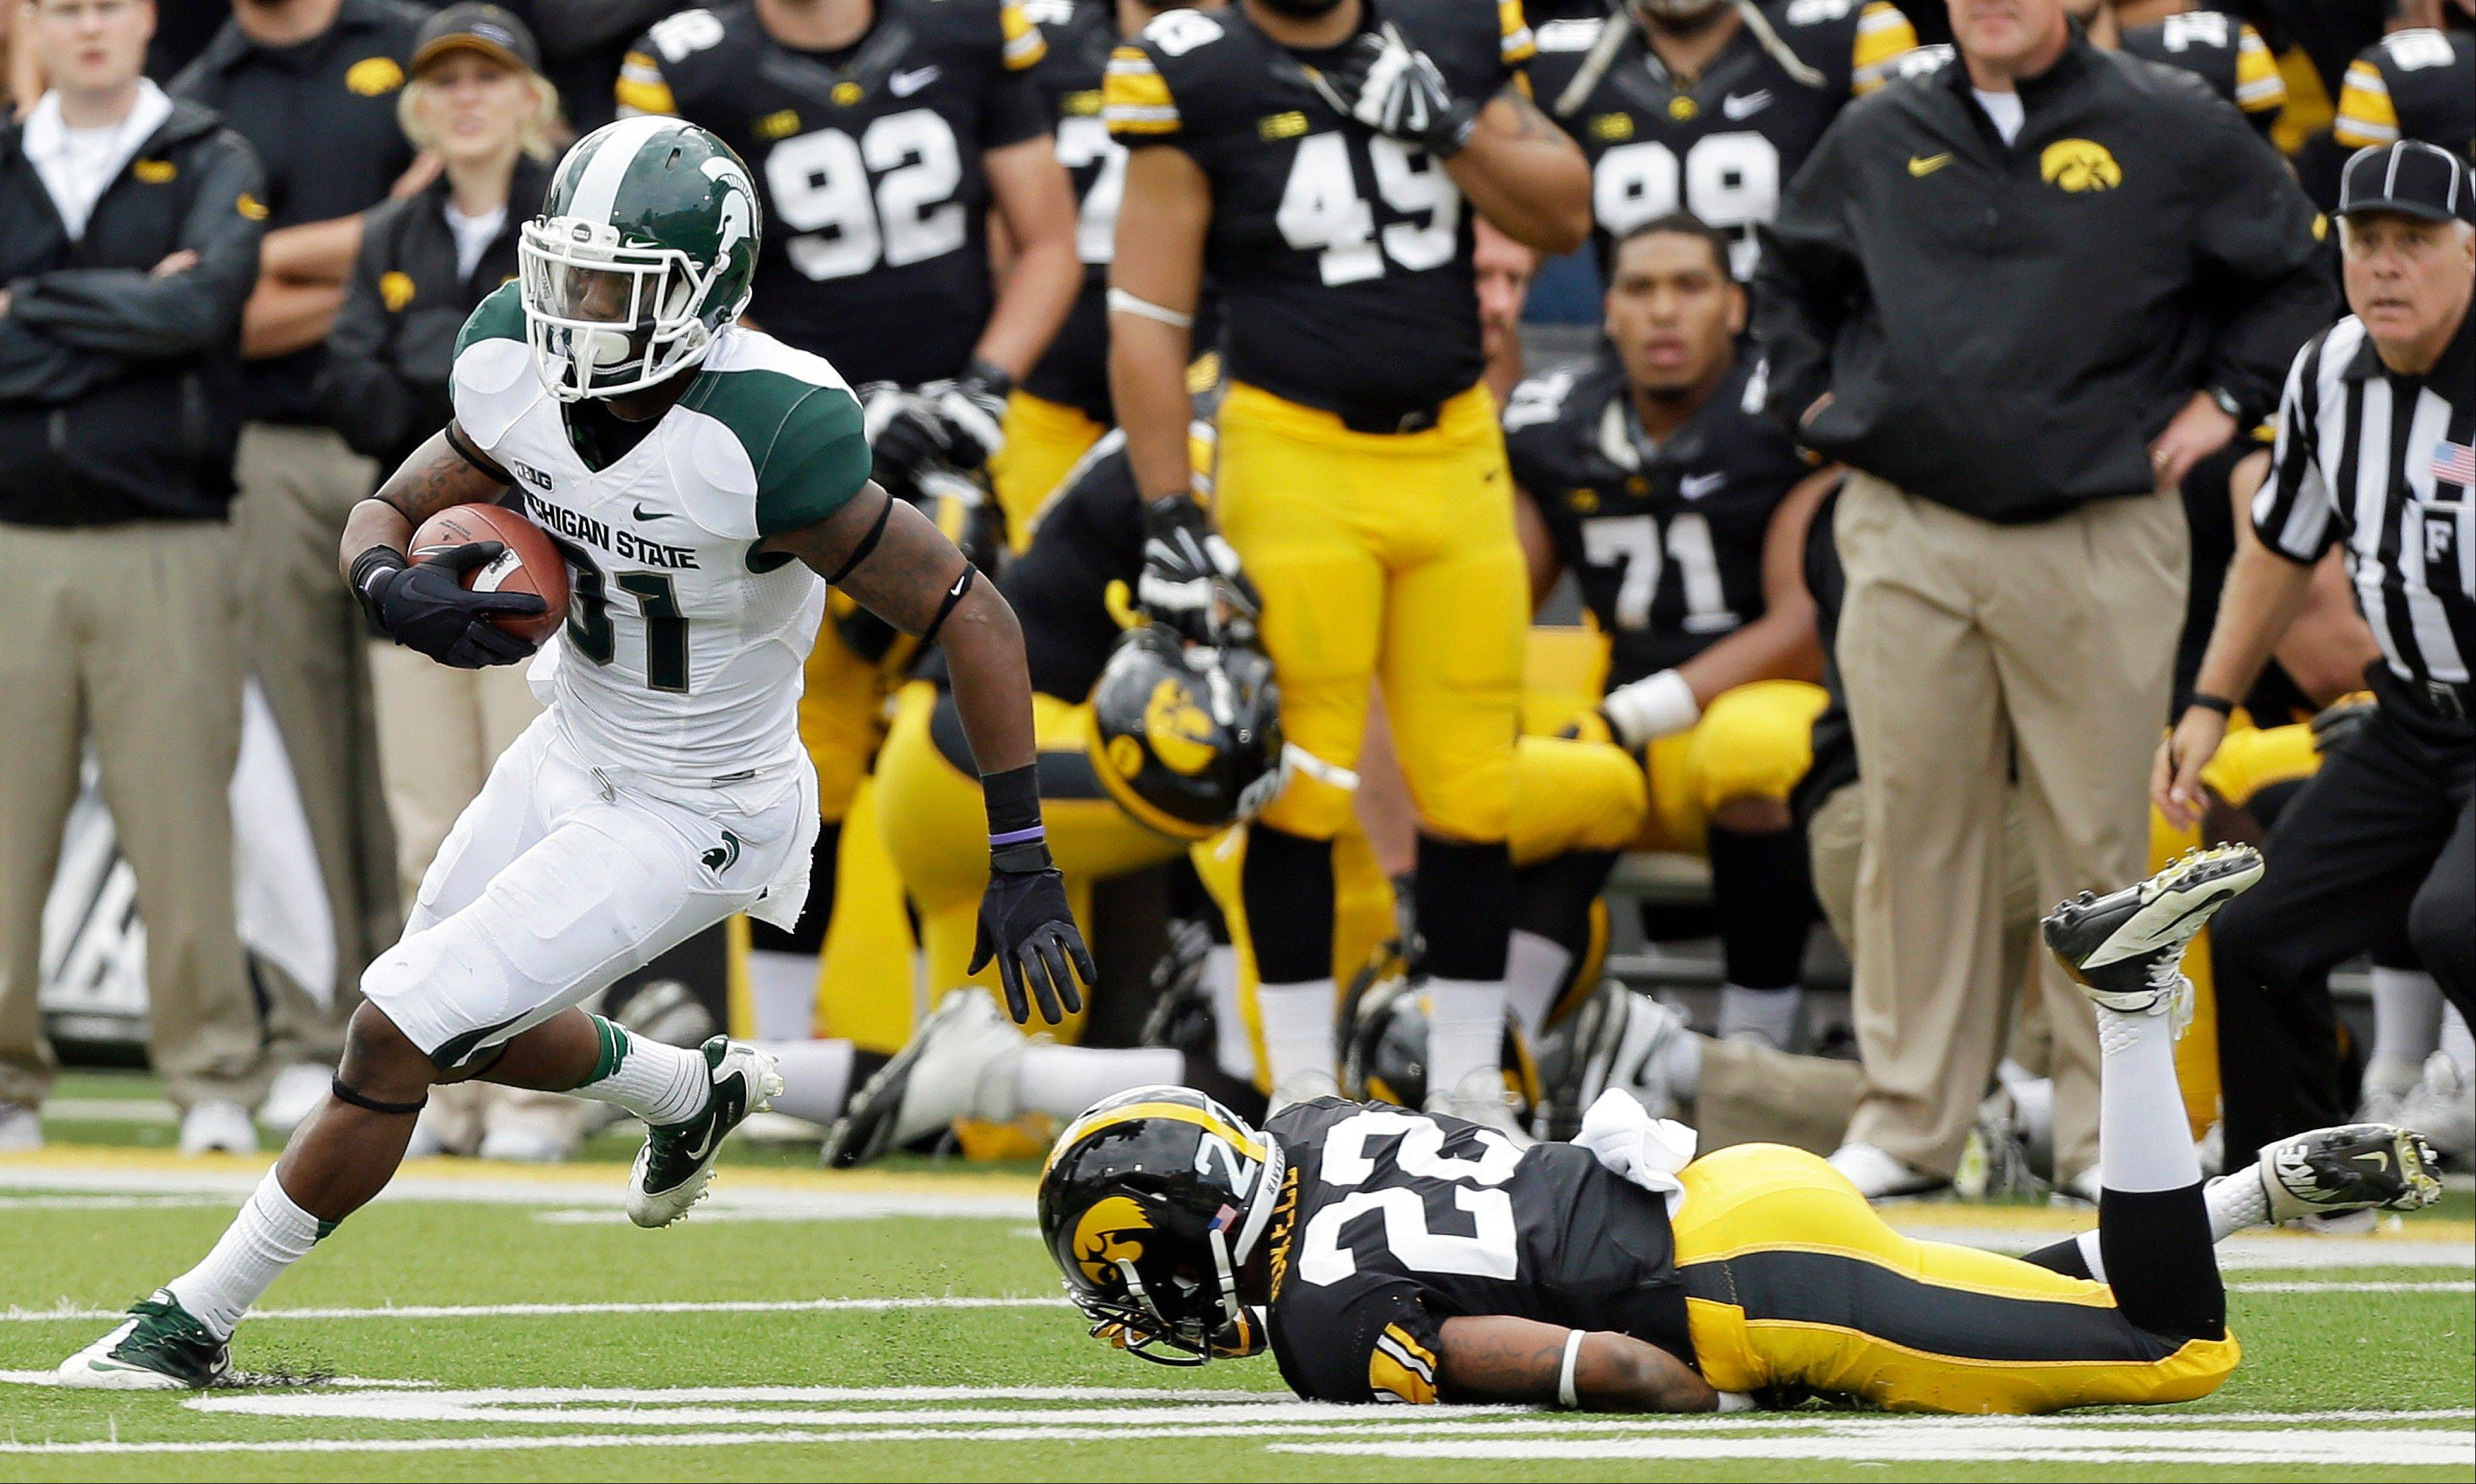 Michigan State cornerback Darqueze Dennard, left, runs past Iowa wide receiver Damond Powell (22) after intercepting a pass during the second half of an NCAA college football game, Saturday, Oct. 5, 2013, in Iowa City, Iowa. Michigan State won 26-14.